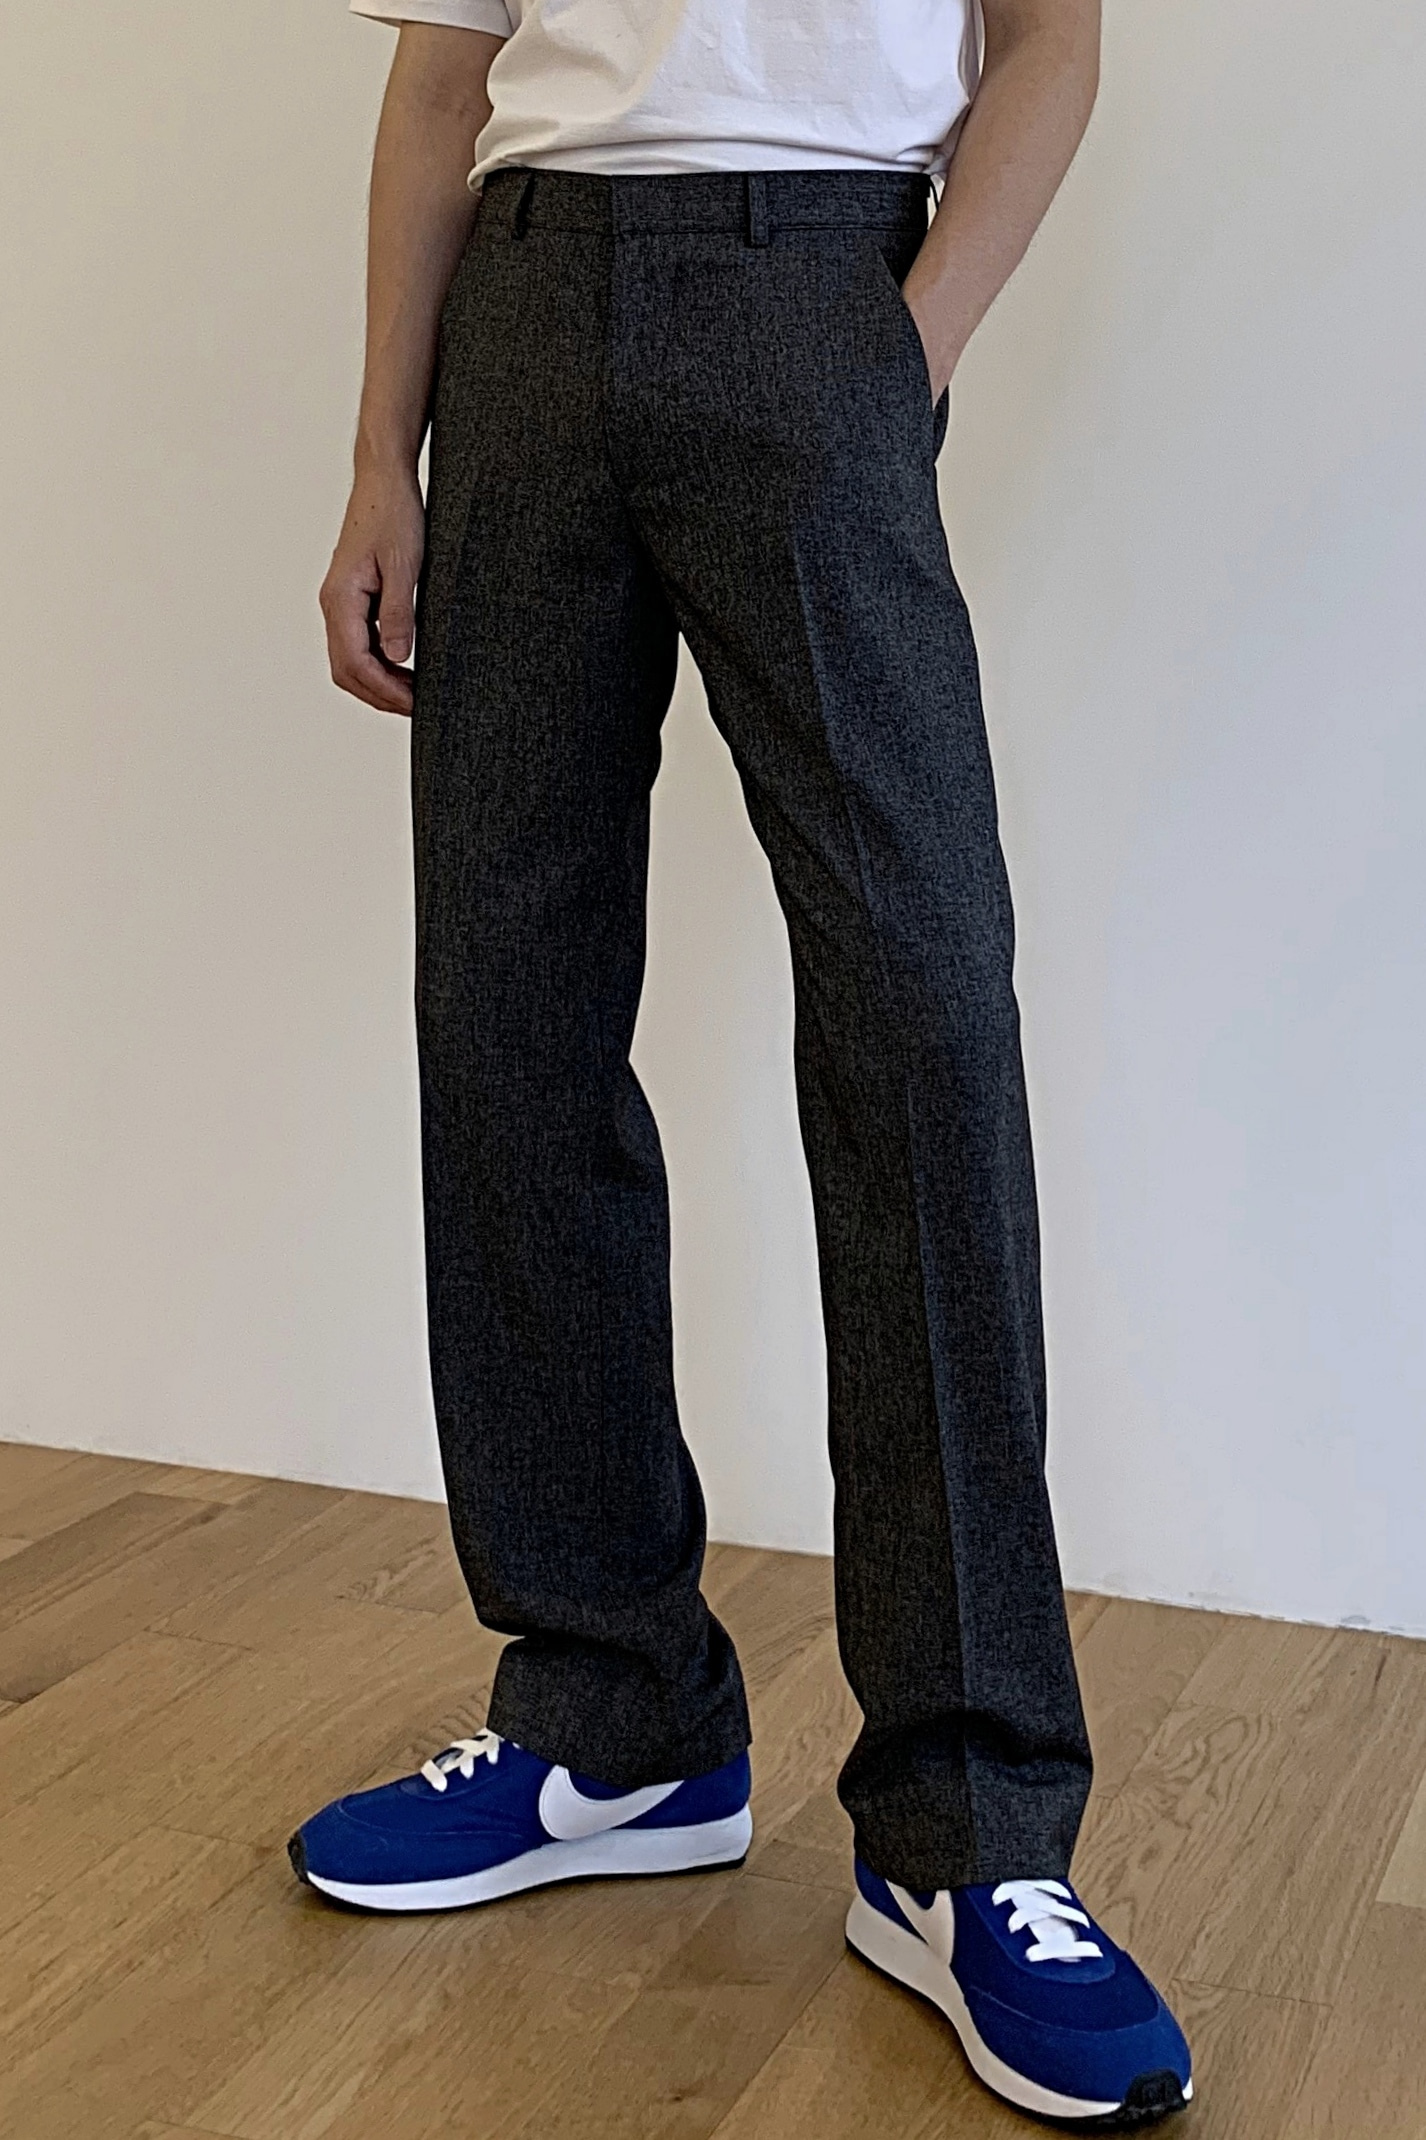 Ssa Brushed Semi Wide Slacks